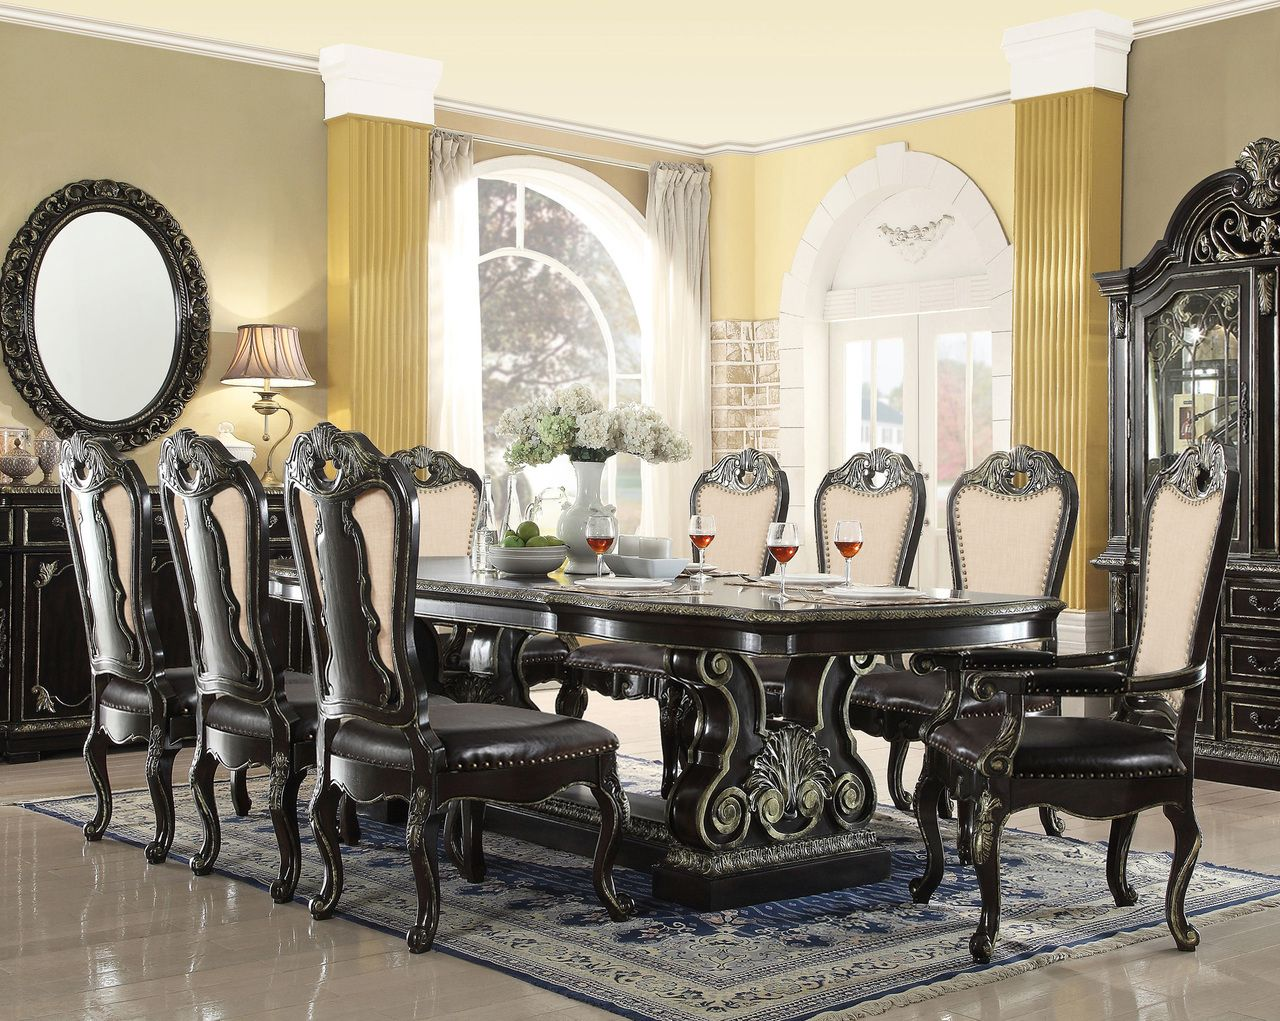 Discount Living Room Sets Free Shipping Makeover With Wood Accent Wall Majestic Aberdeen 112 Ebony Gold Extendable 9 Pc Dining Table Set At Price Shop Formal 8 Chairs And Enjoy